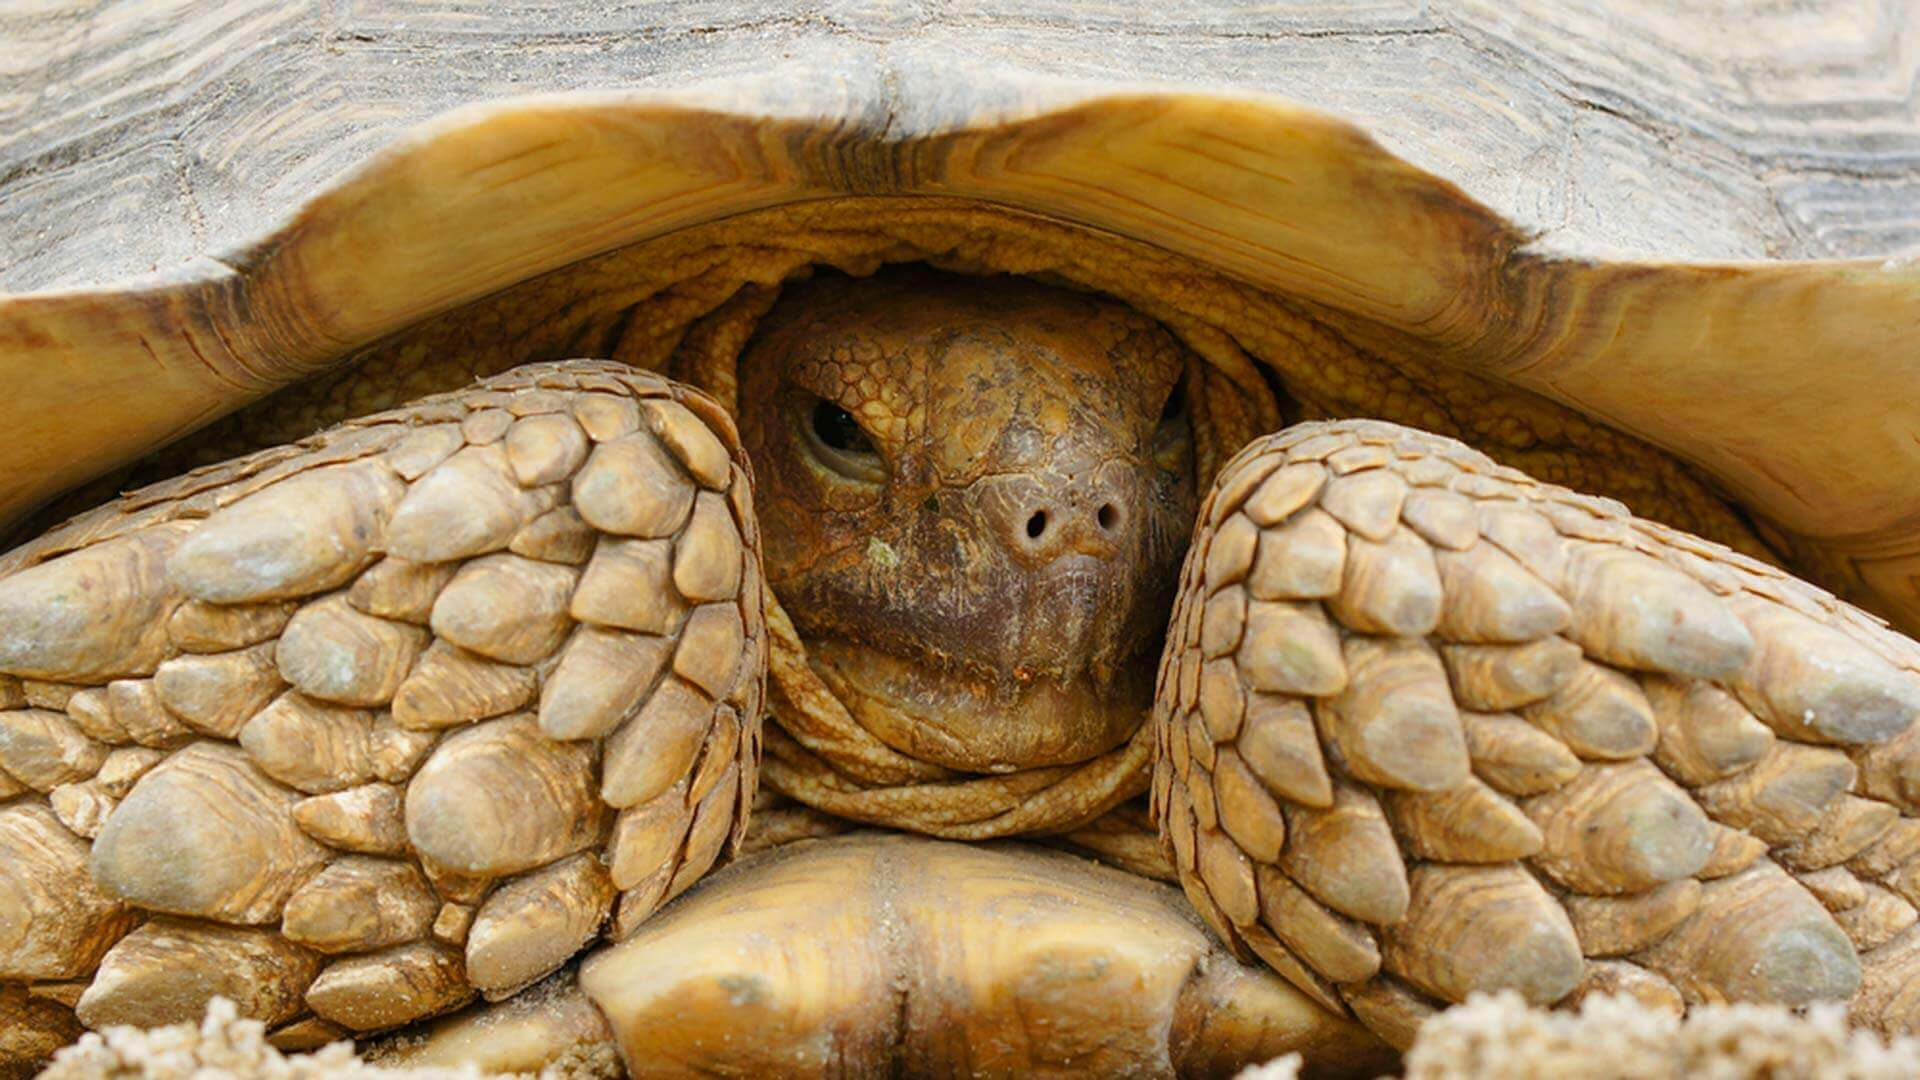 giant galapagos tortoise hiding in his shell